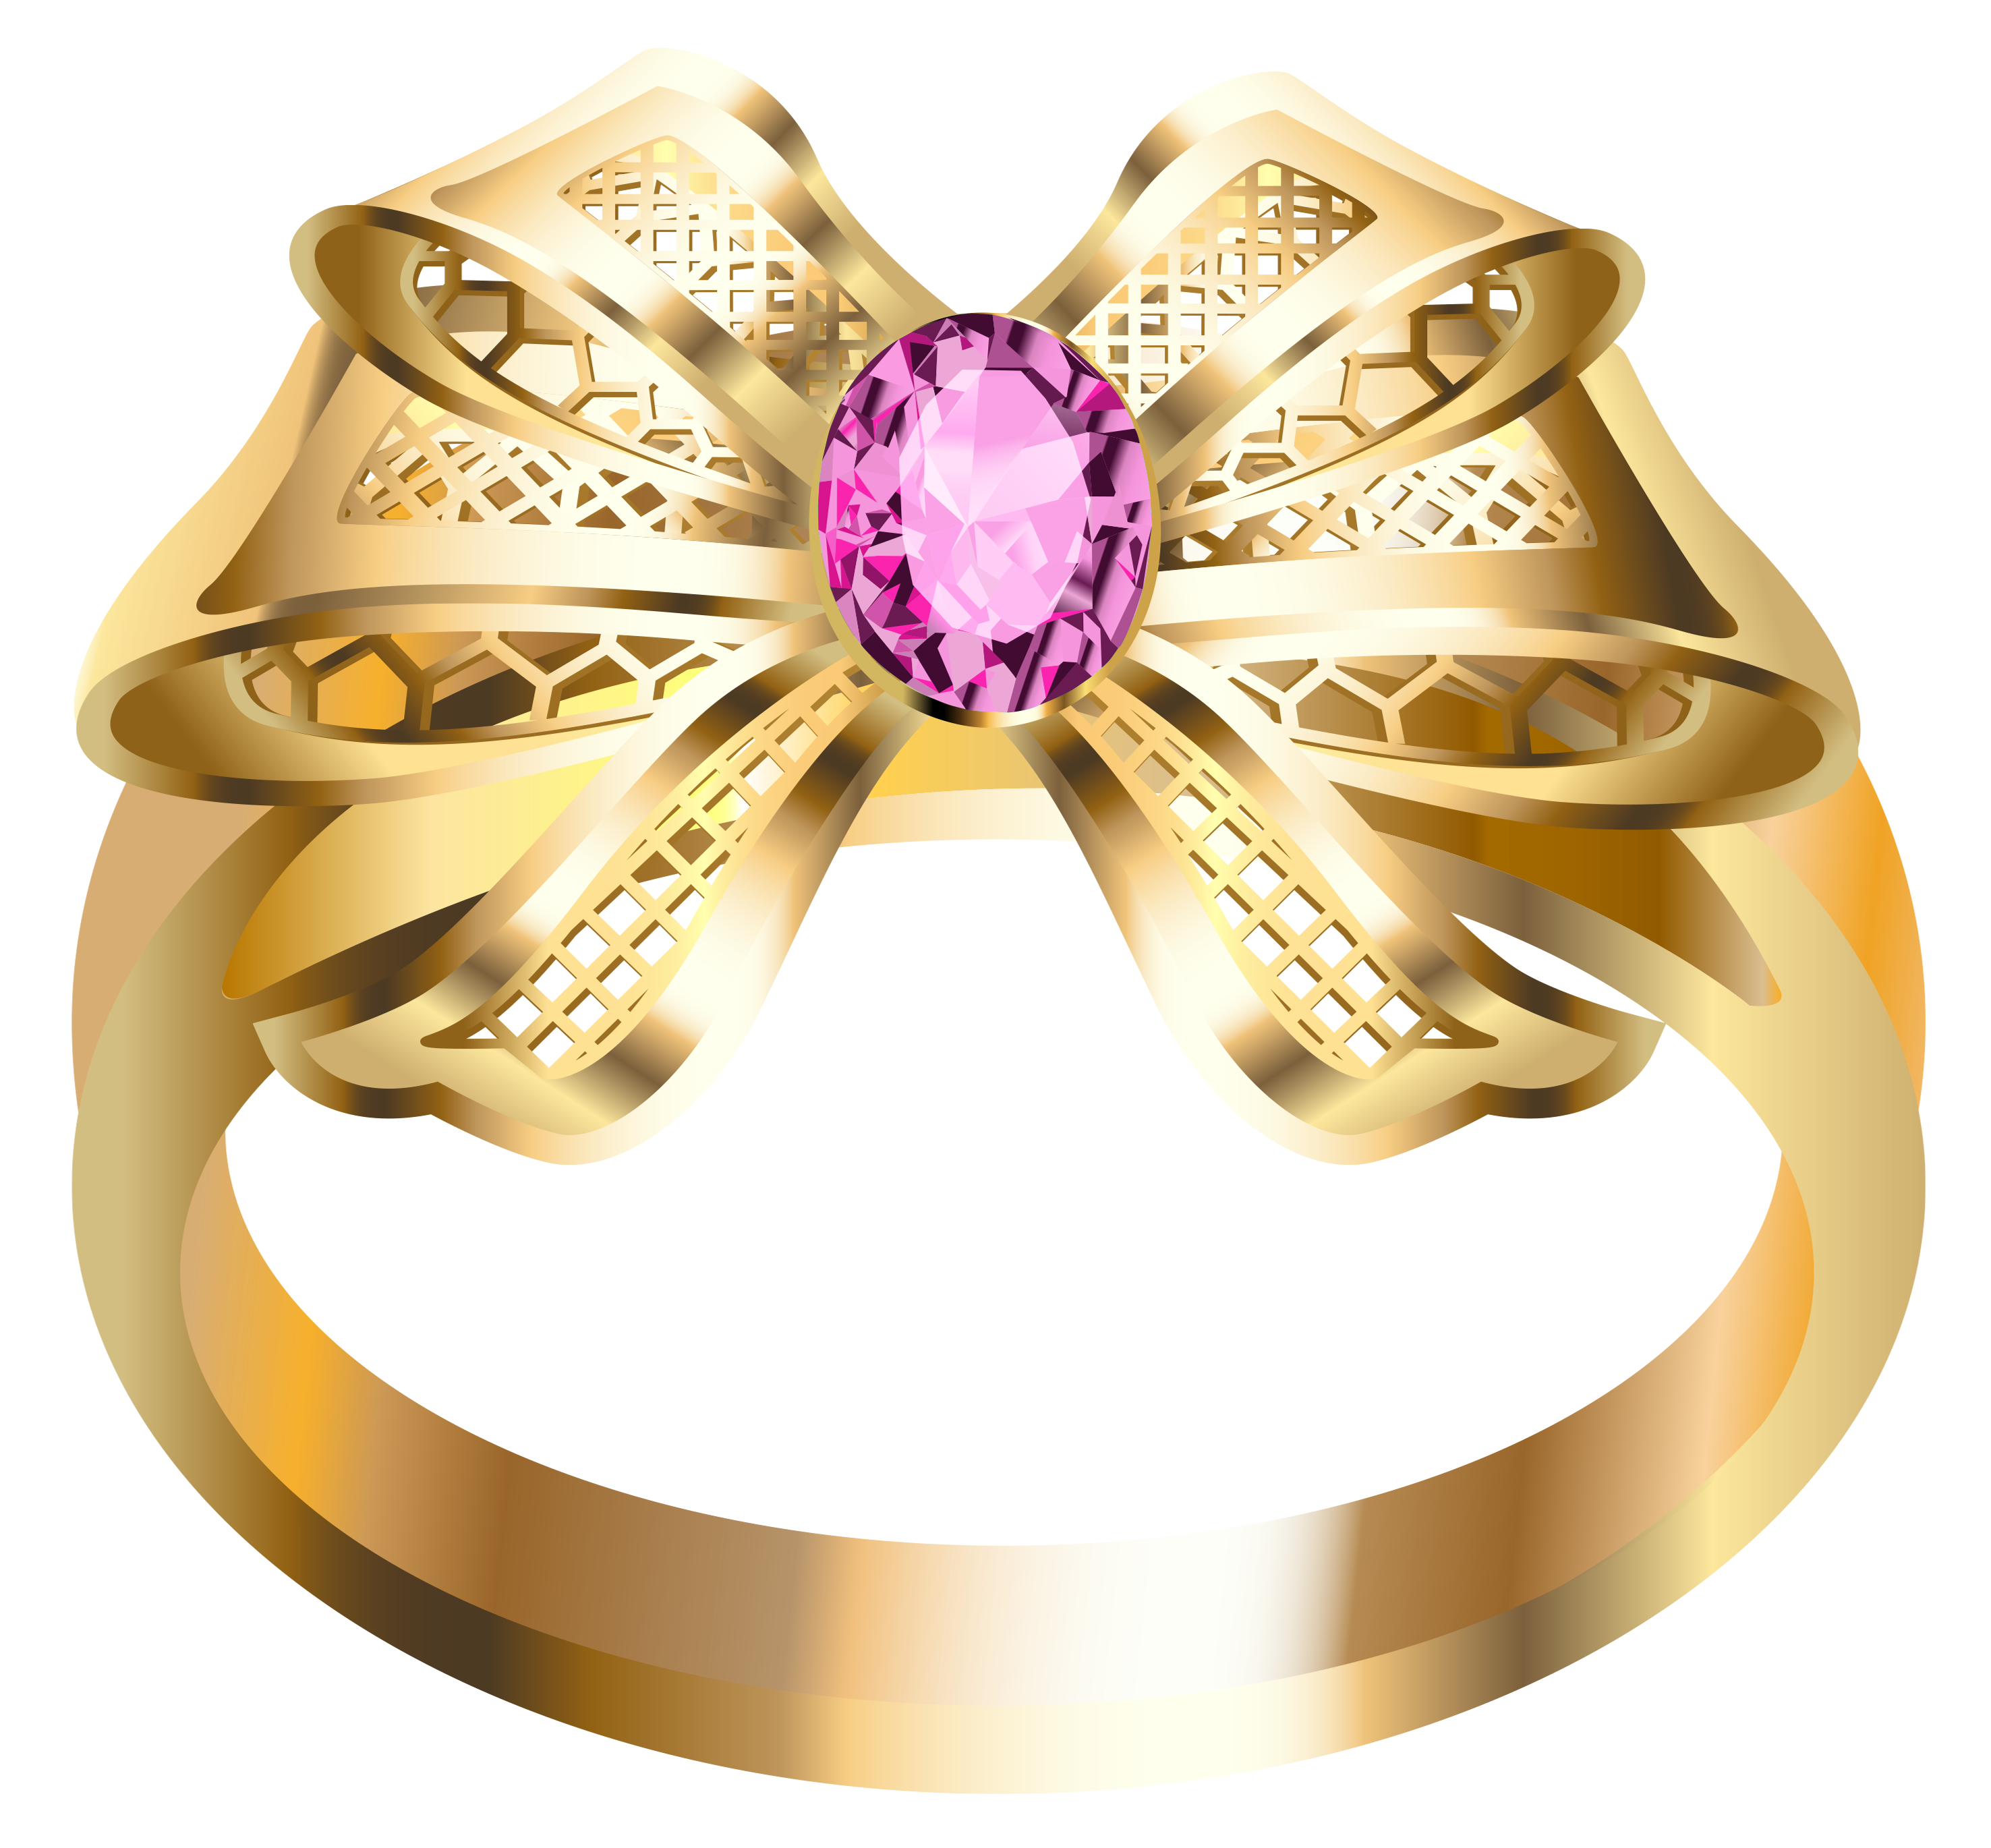 Jewelry gold ring pencil. Ladder clipart golden